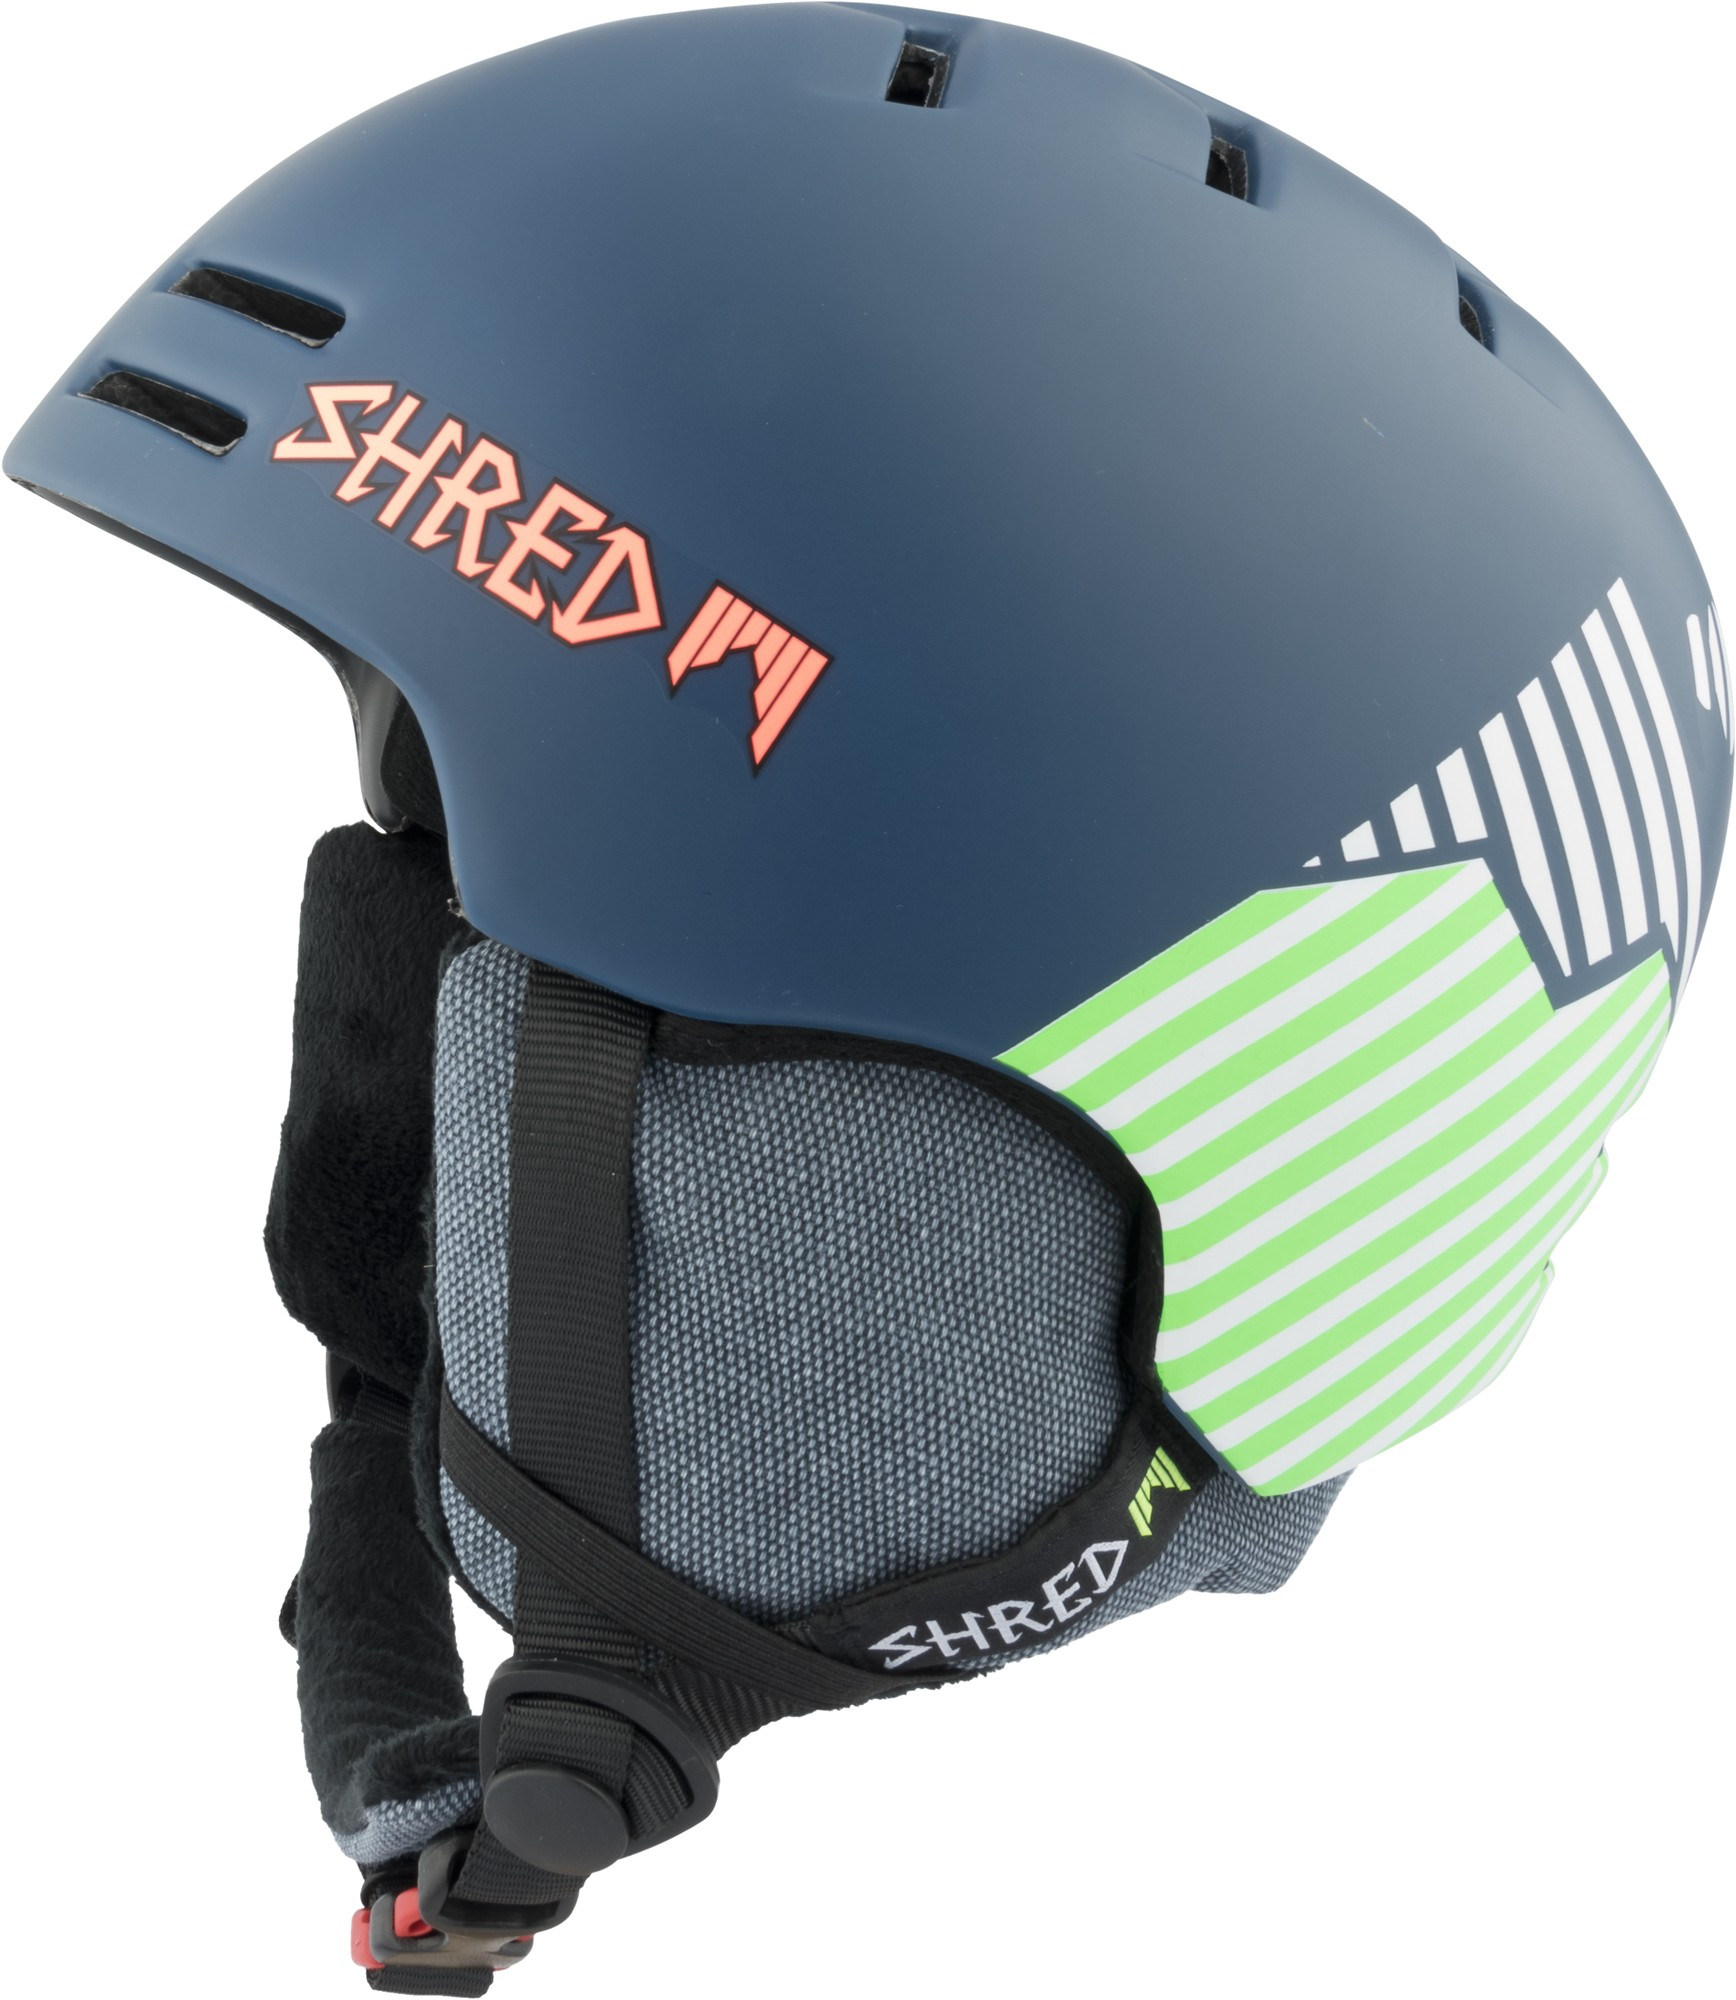 shred slam cap noseason needmoresnow